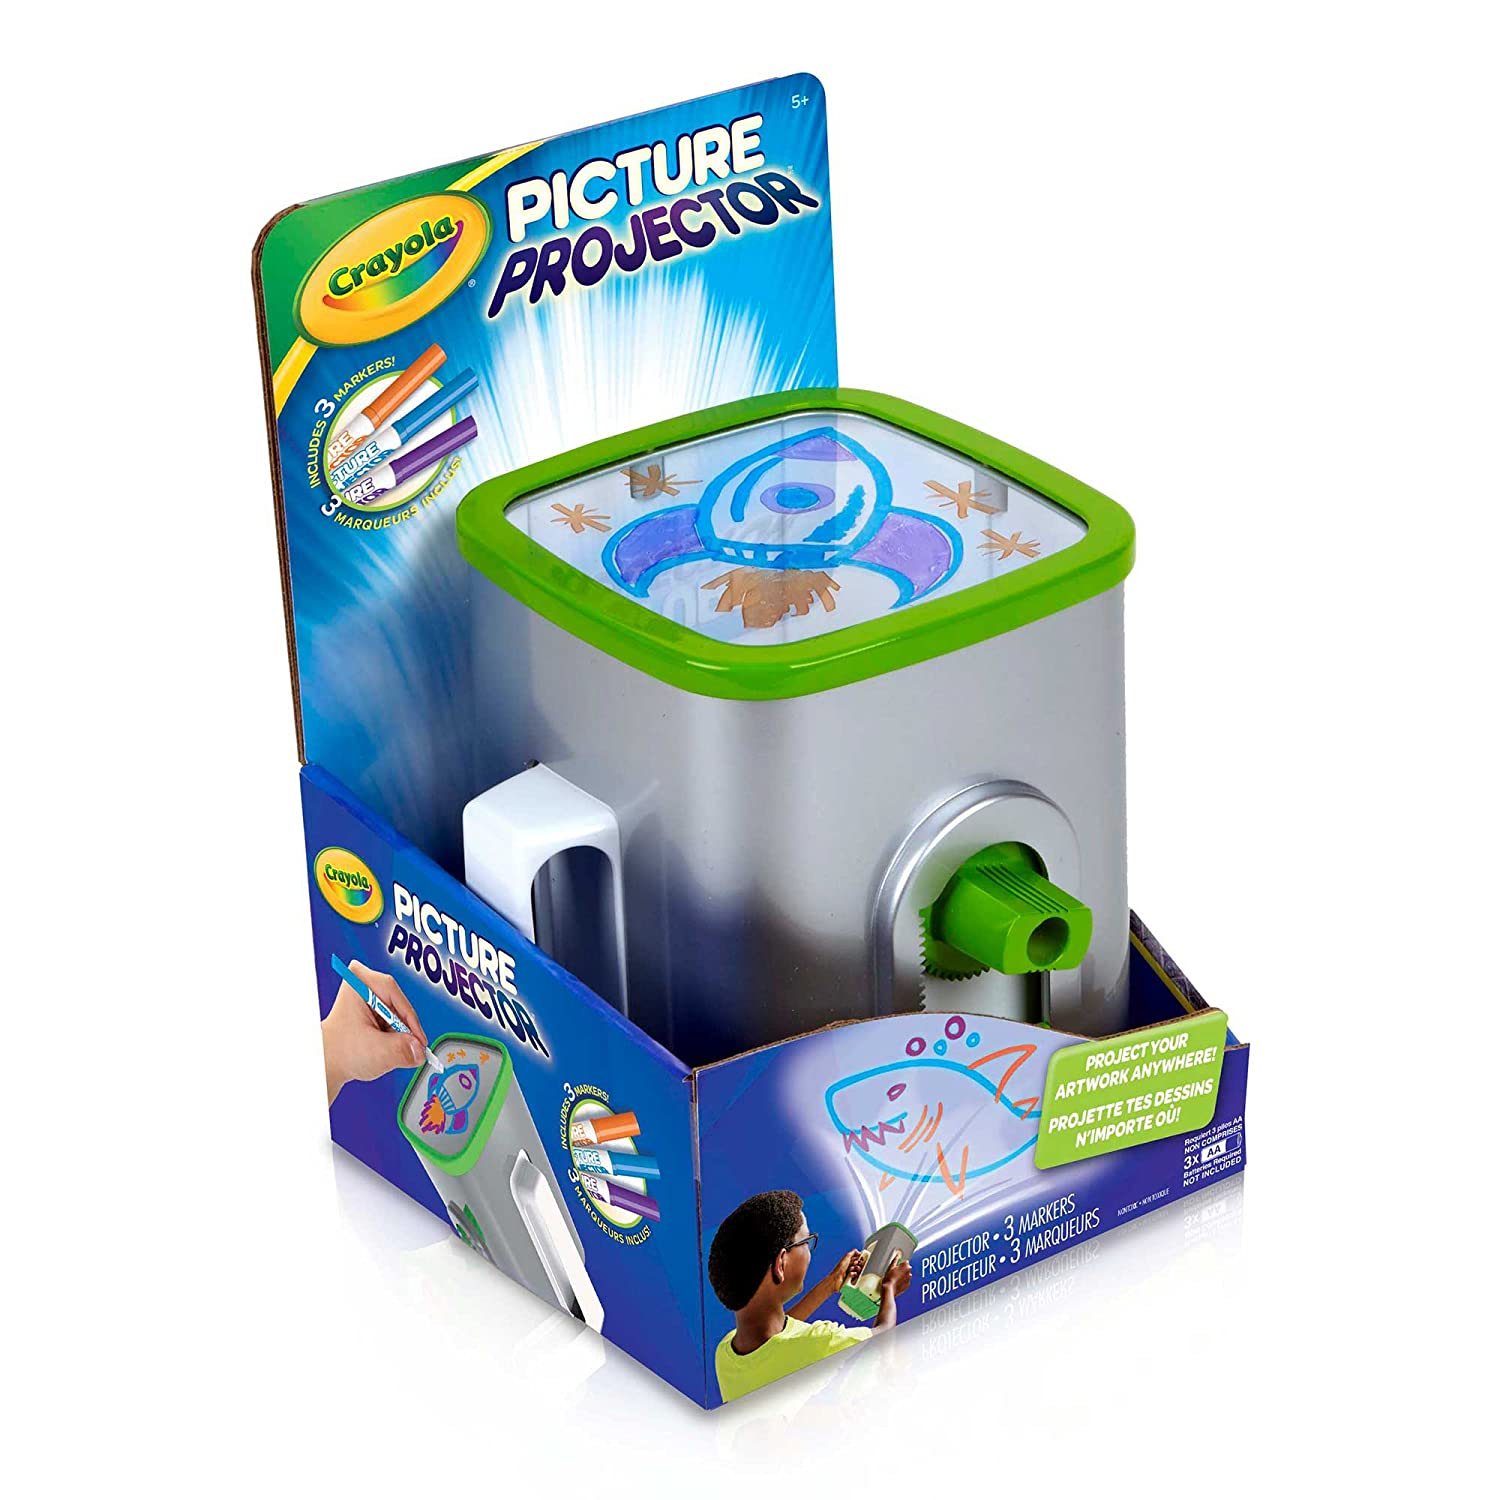 Amazon.com: Crayola Picture Projector: Toys & Games